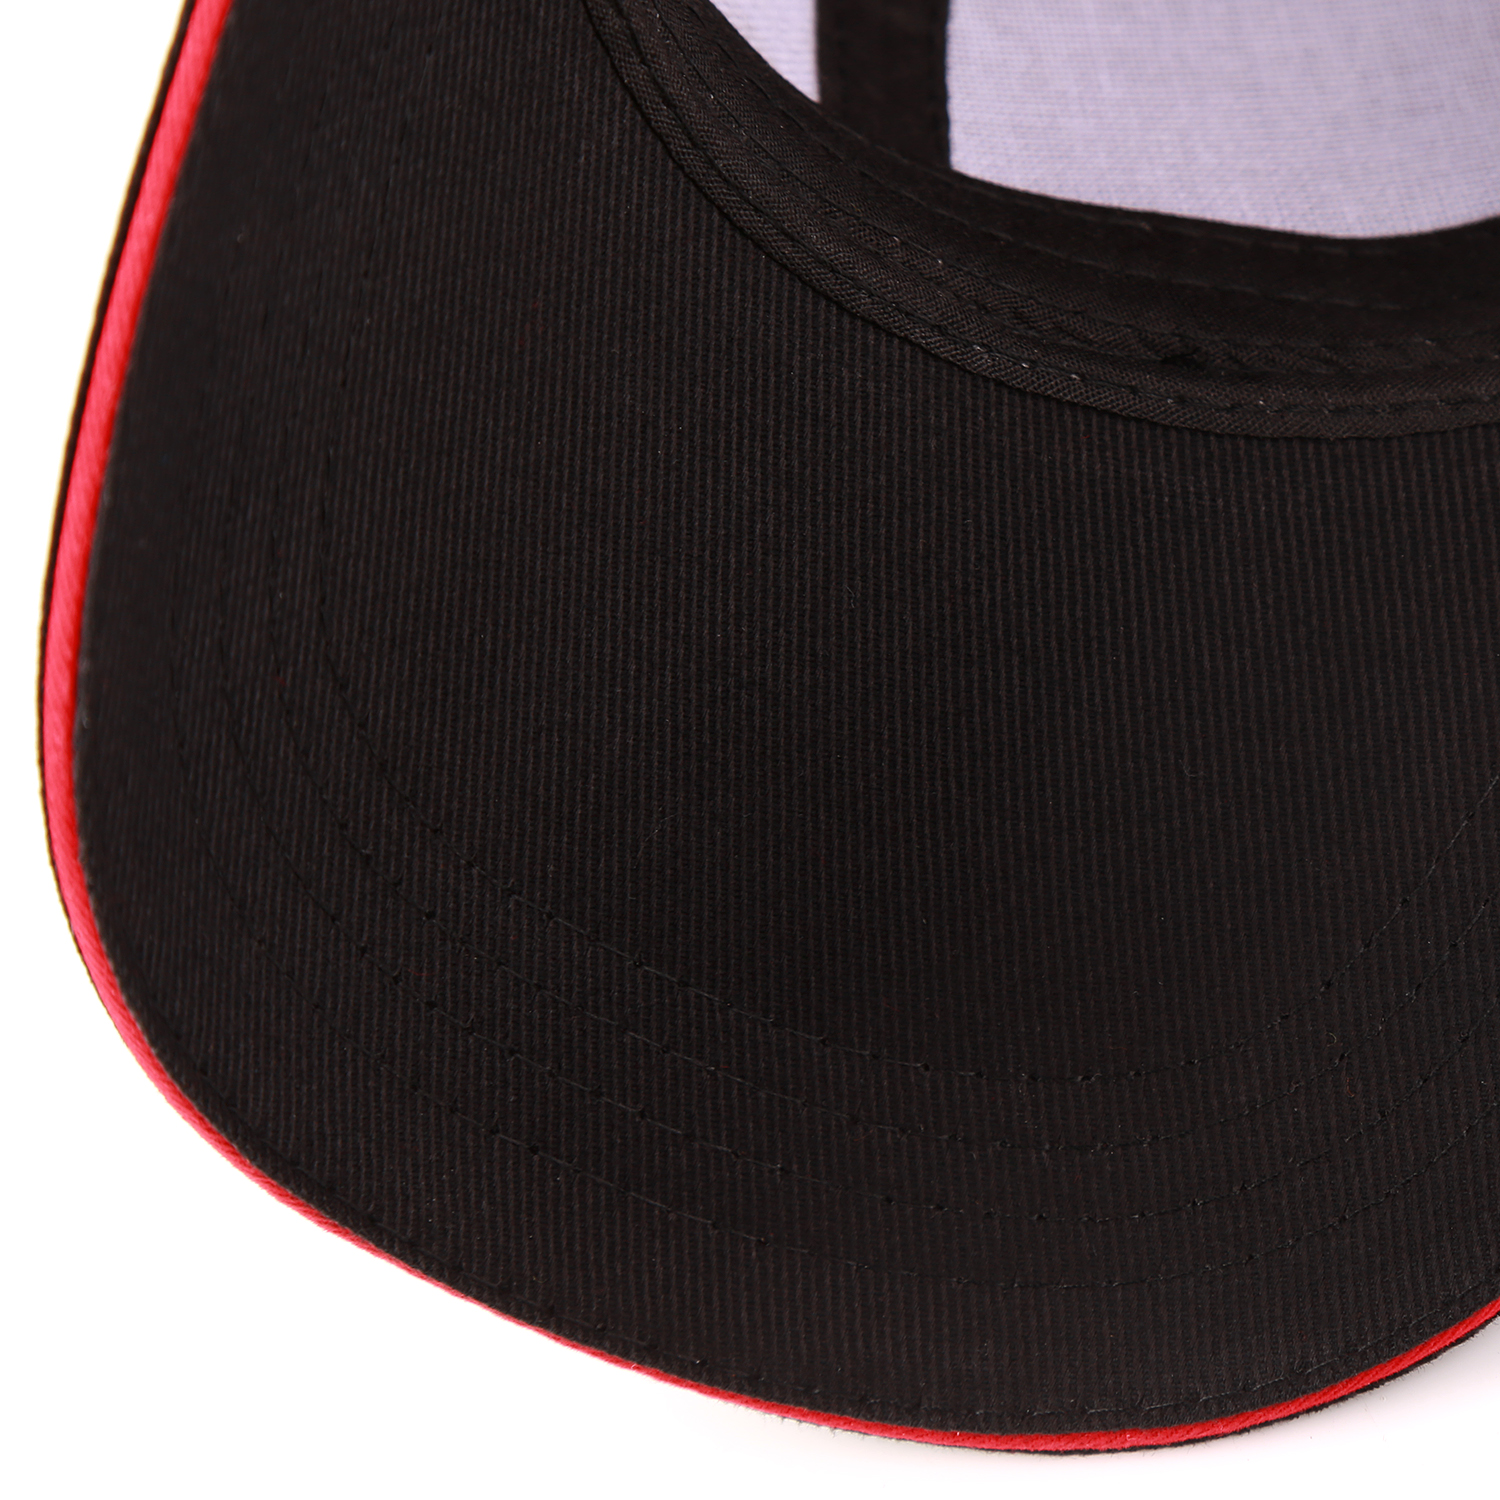 YUEXING Free Sample custom embroidered Spot 6 blank pure cotton panel baseball cap without logo